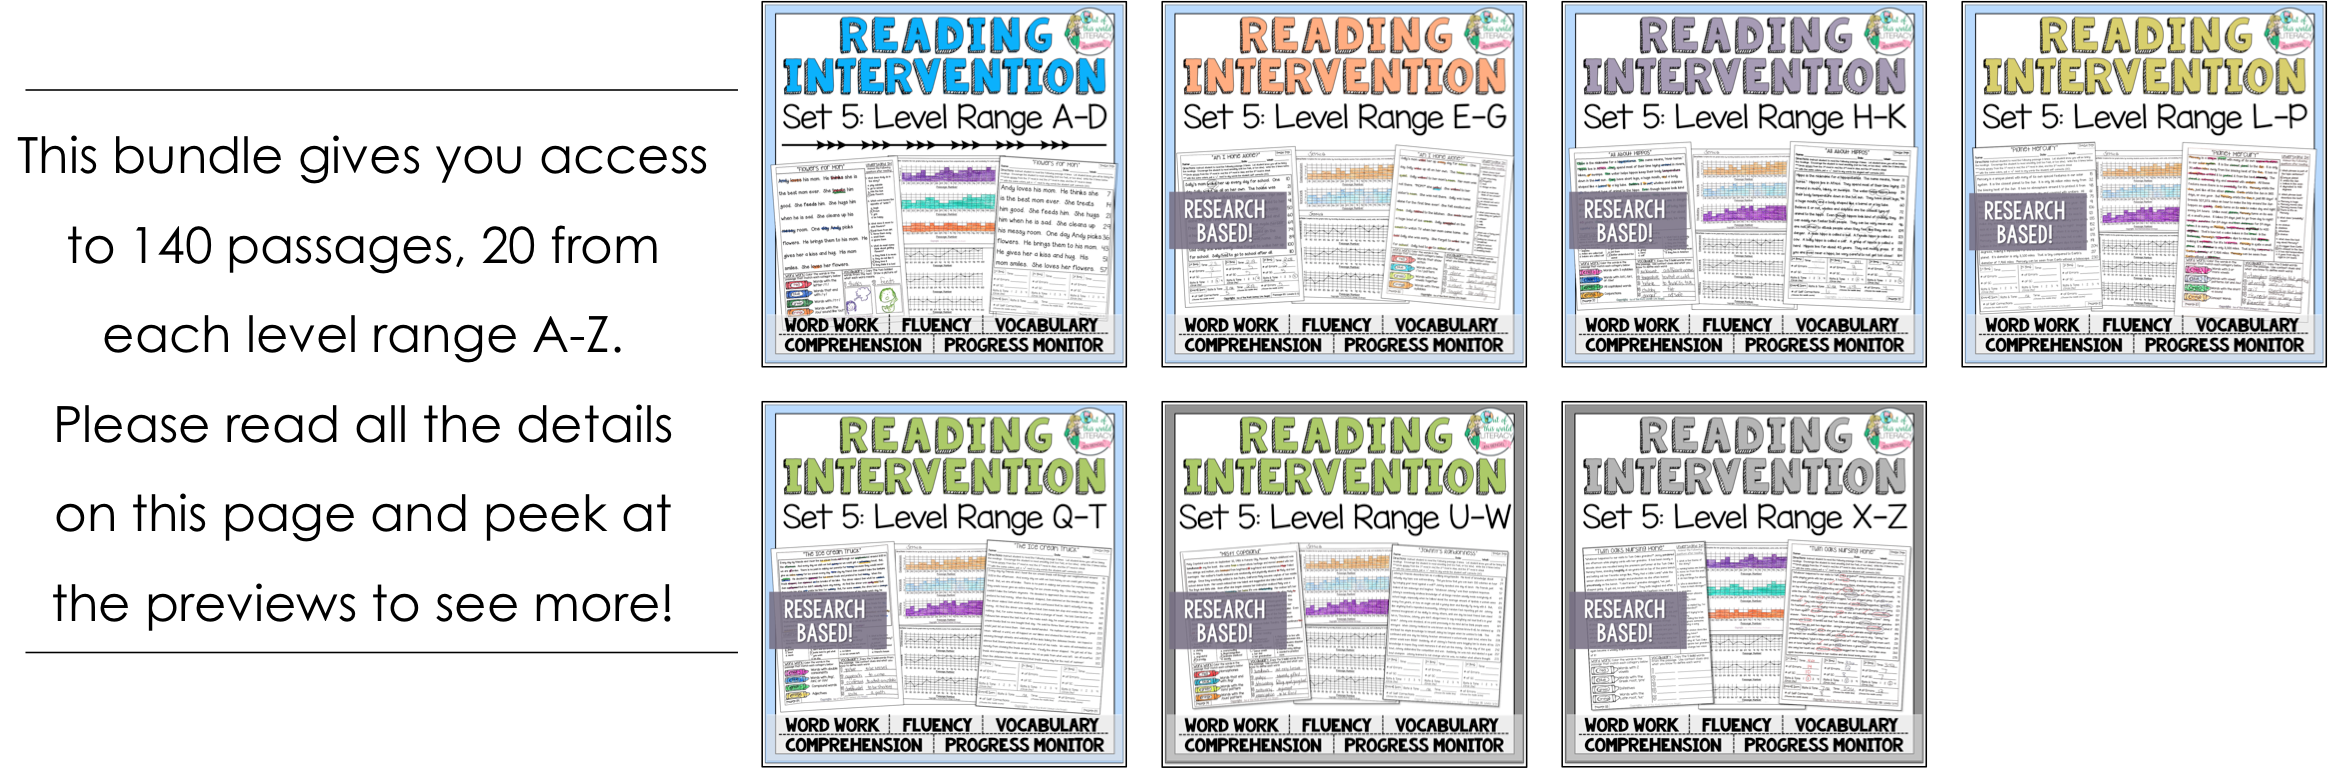 Reading intervention program set five bundle jen bengel 8 progress monitoring pages for teacherstutors to track student growth with fluency comprehension word work and vocabulary geenschuldenfo Image collections